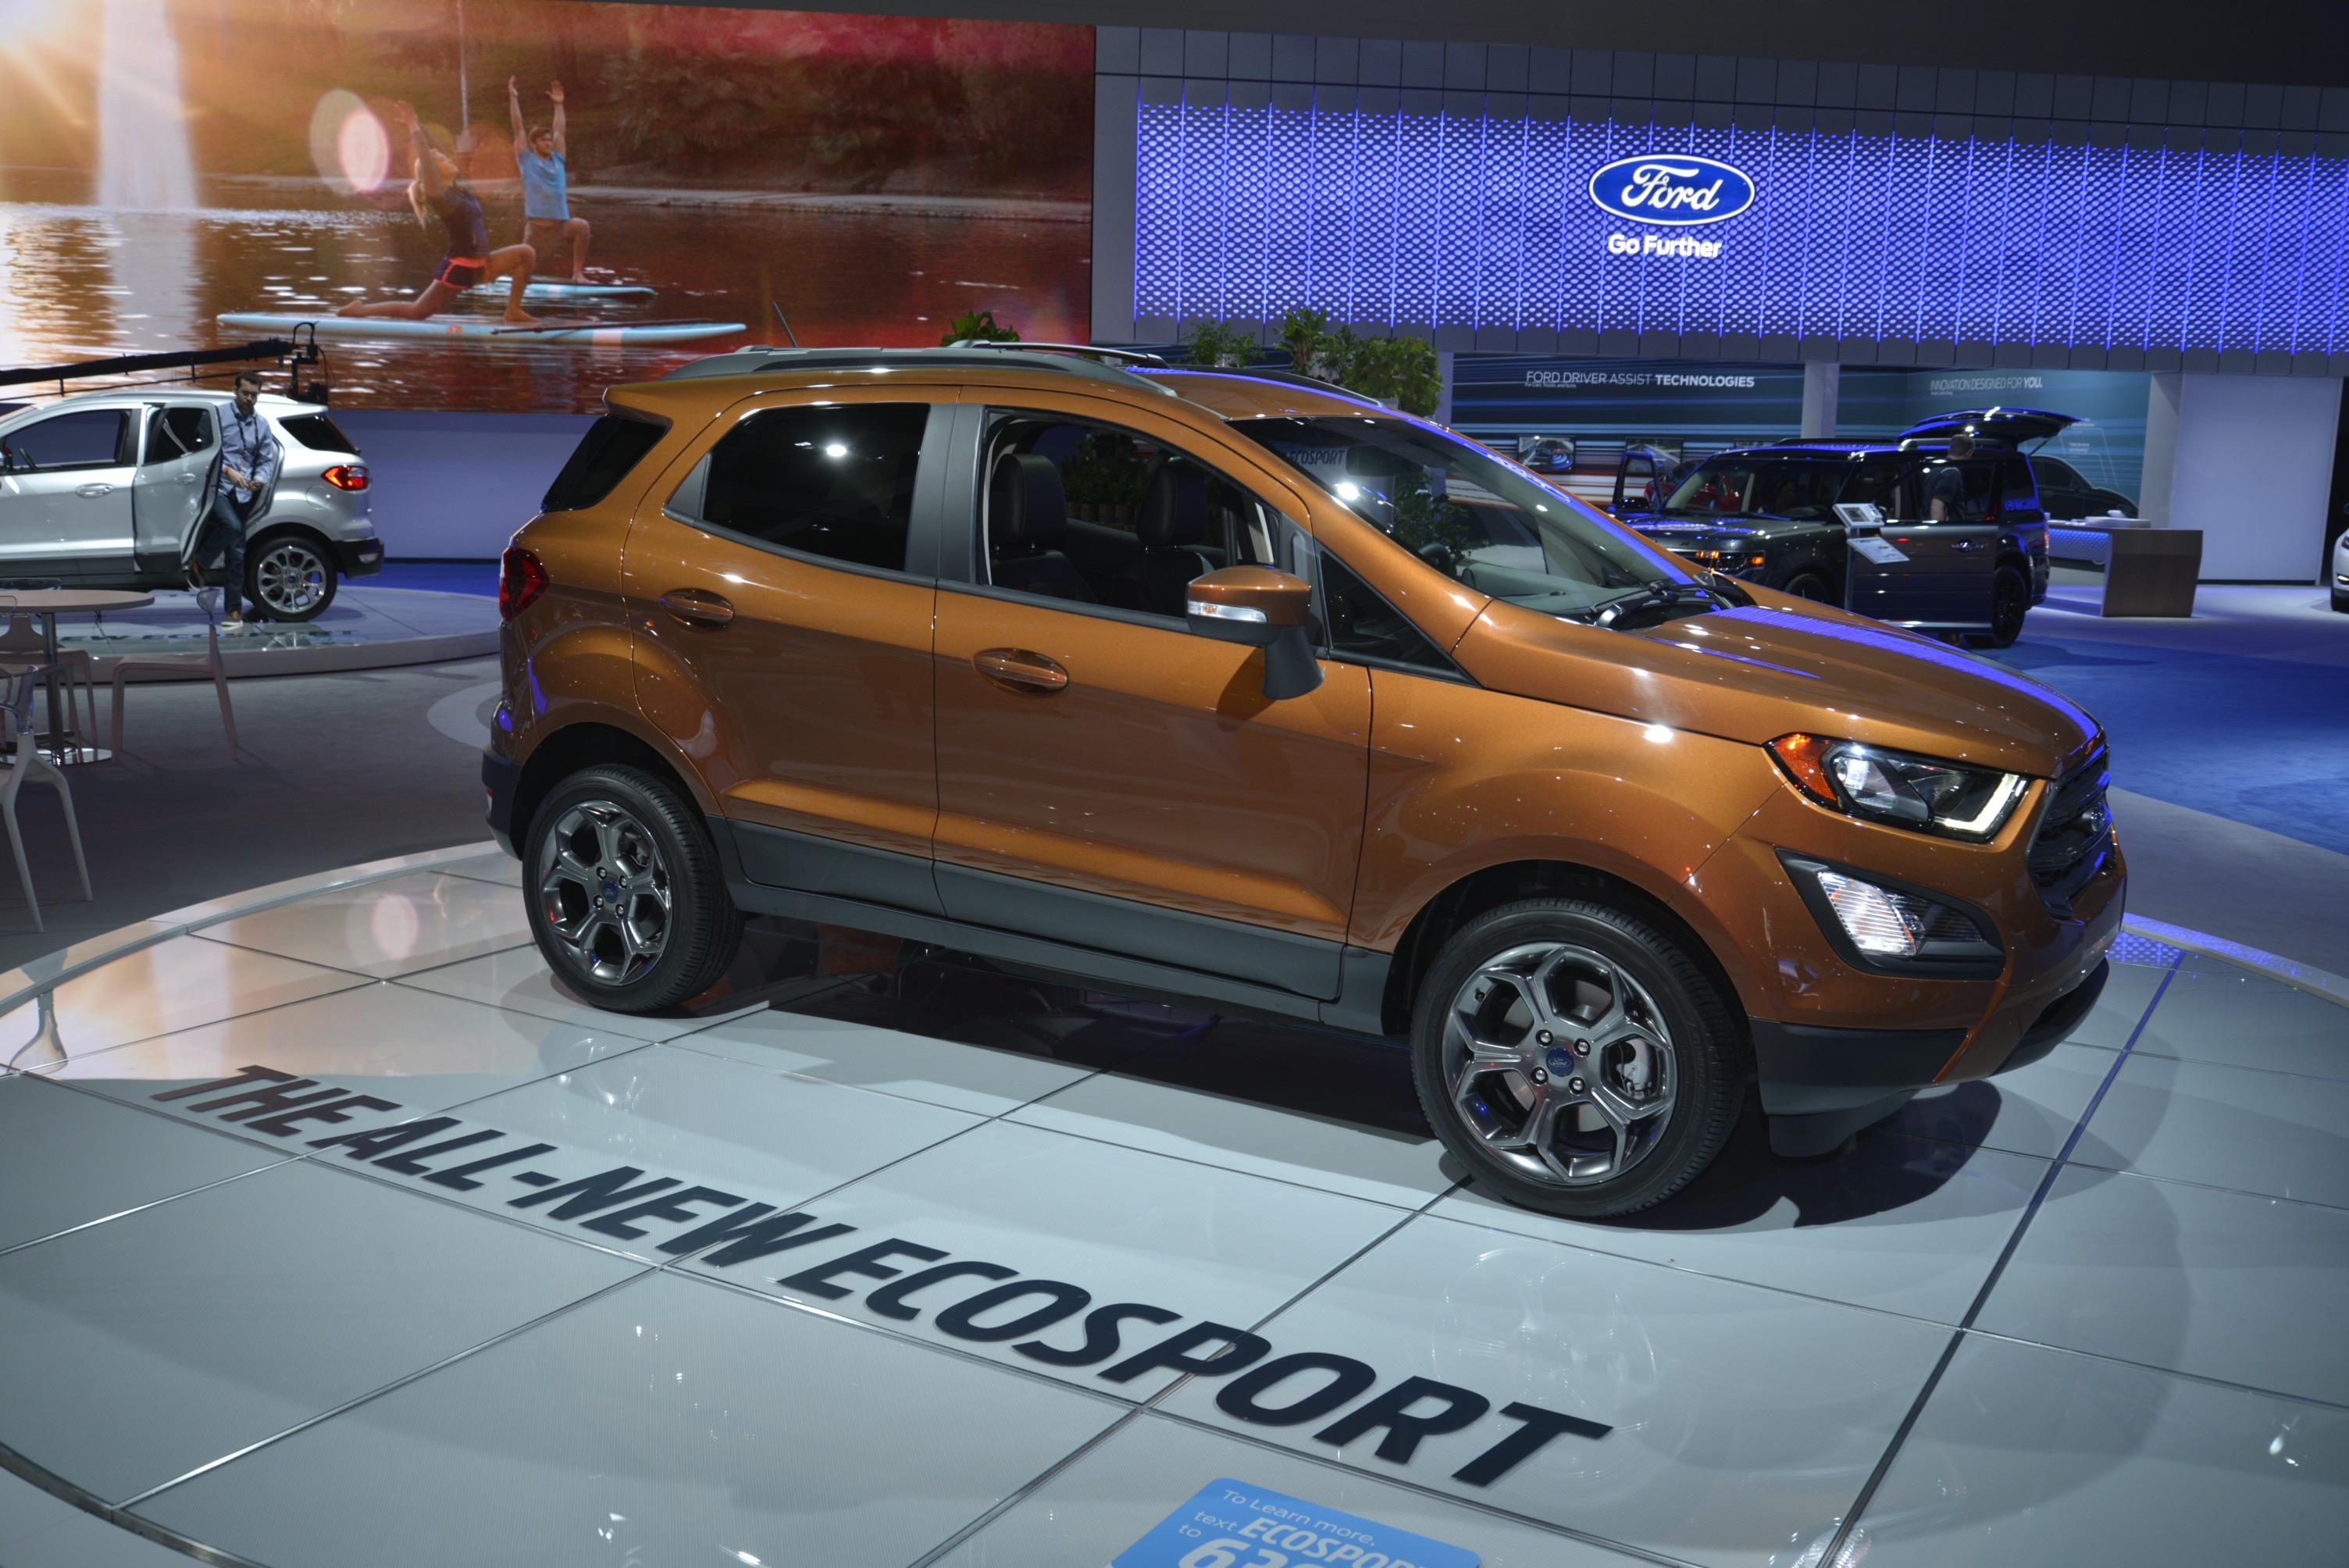 2018 Ford EcoSport Looks Ugly as Sin in Los Angeles ... & 2018 Ford EcoSport Looks Ugly as Sin in Los Angeles - autoevolution markmcfarlin.com